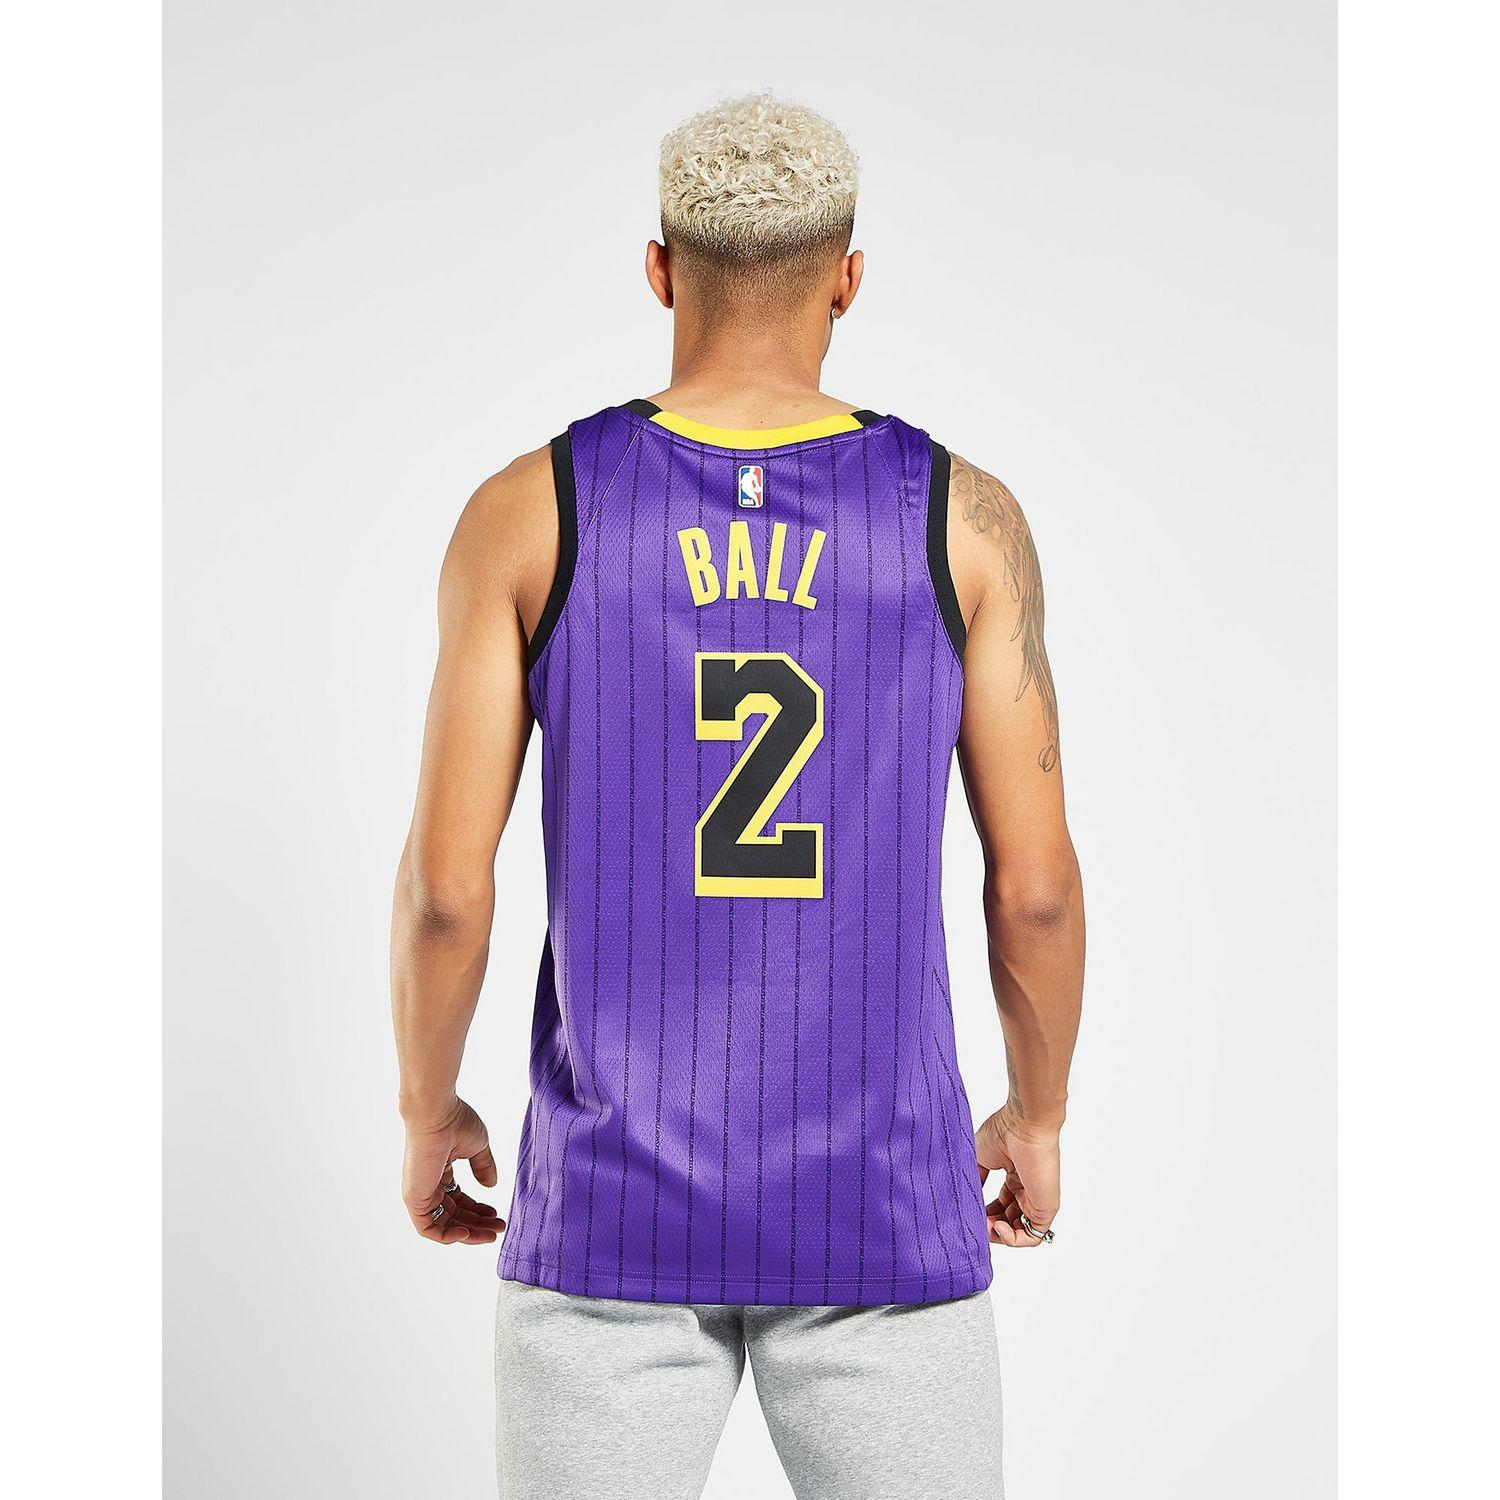 Nike - Purple Nba Los Angeles Lakers Ball  2 City Jersey for Men - Lyst.  View fullscreen 463c65d3c